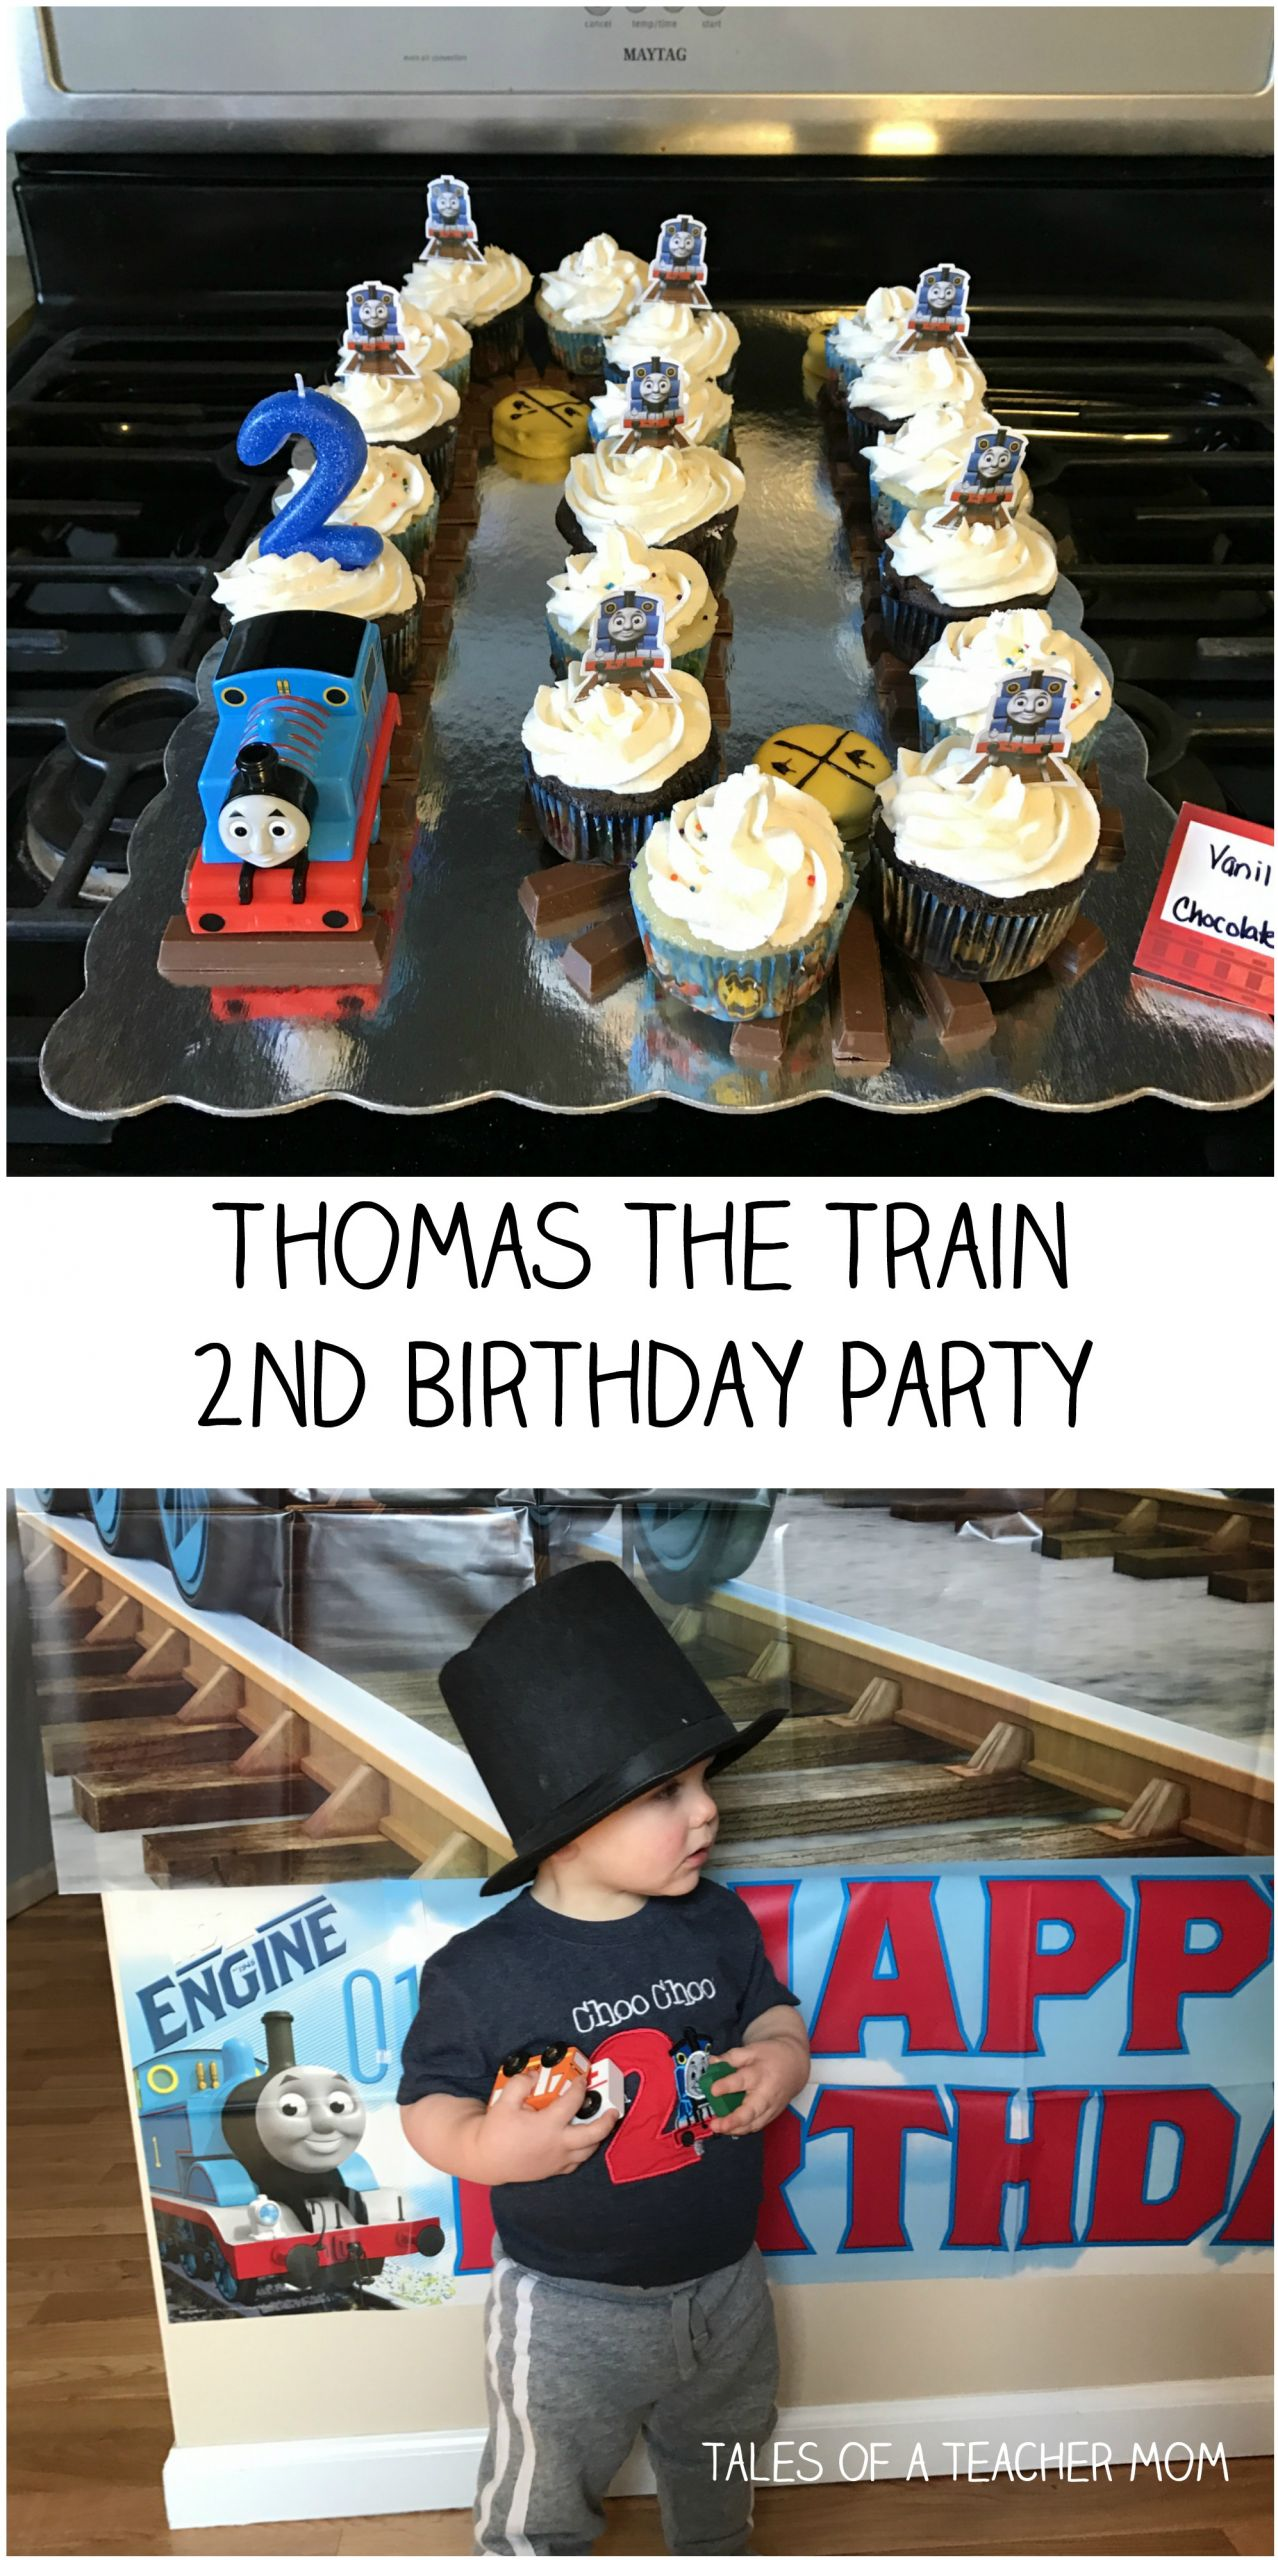 Thomas The Train Birthday Decorations  Thomas the Train 2nd Birthday Party Tales of a Teacher Mom